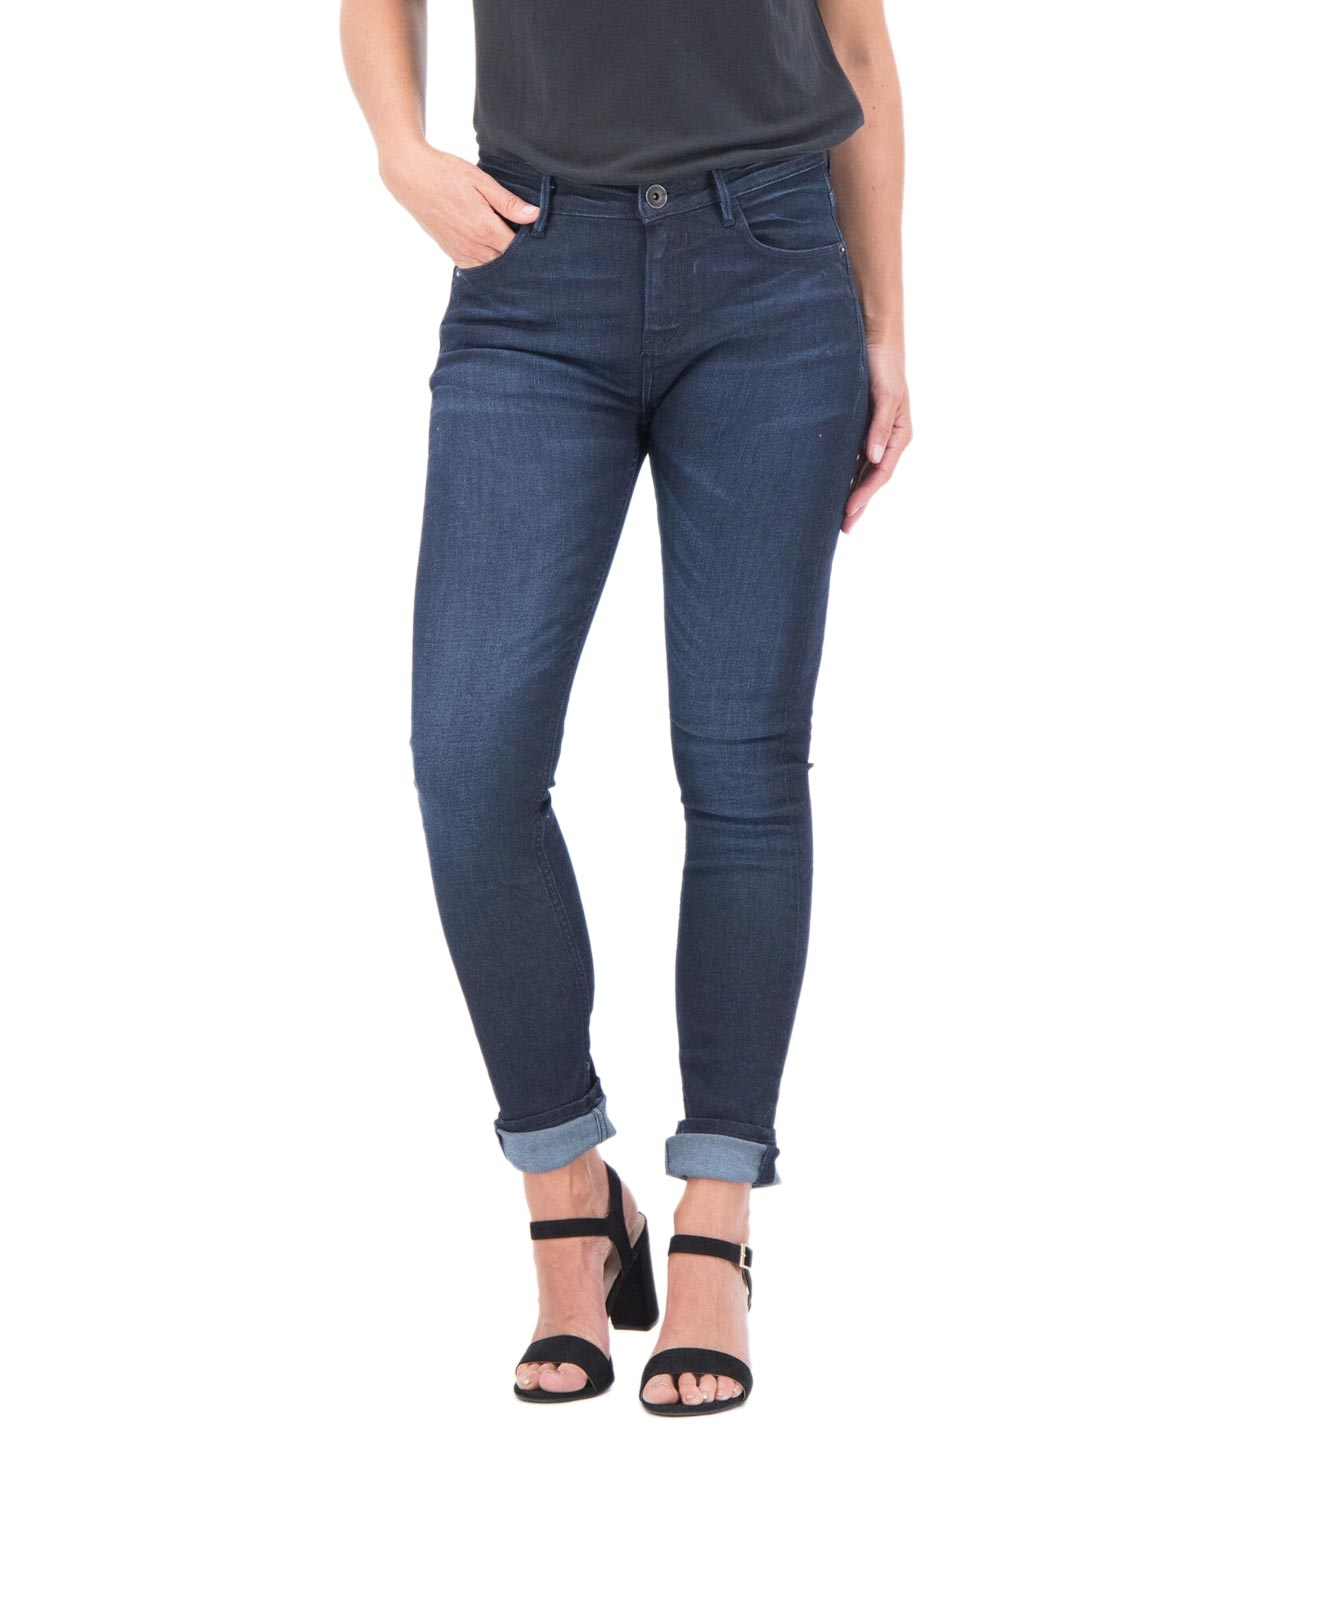 Hosen - Garcia Super Slim Fit Jeans Celia in Dark Denim  - Onlineshop Jeans Meile